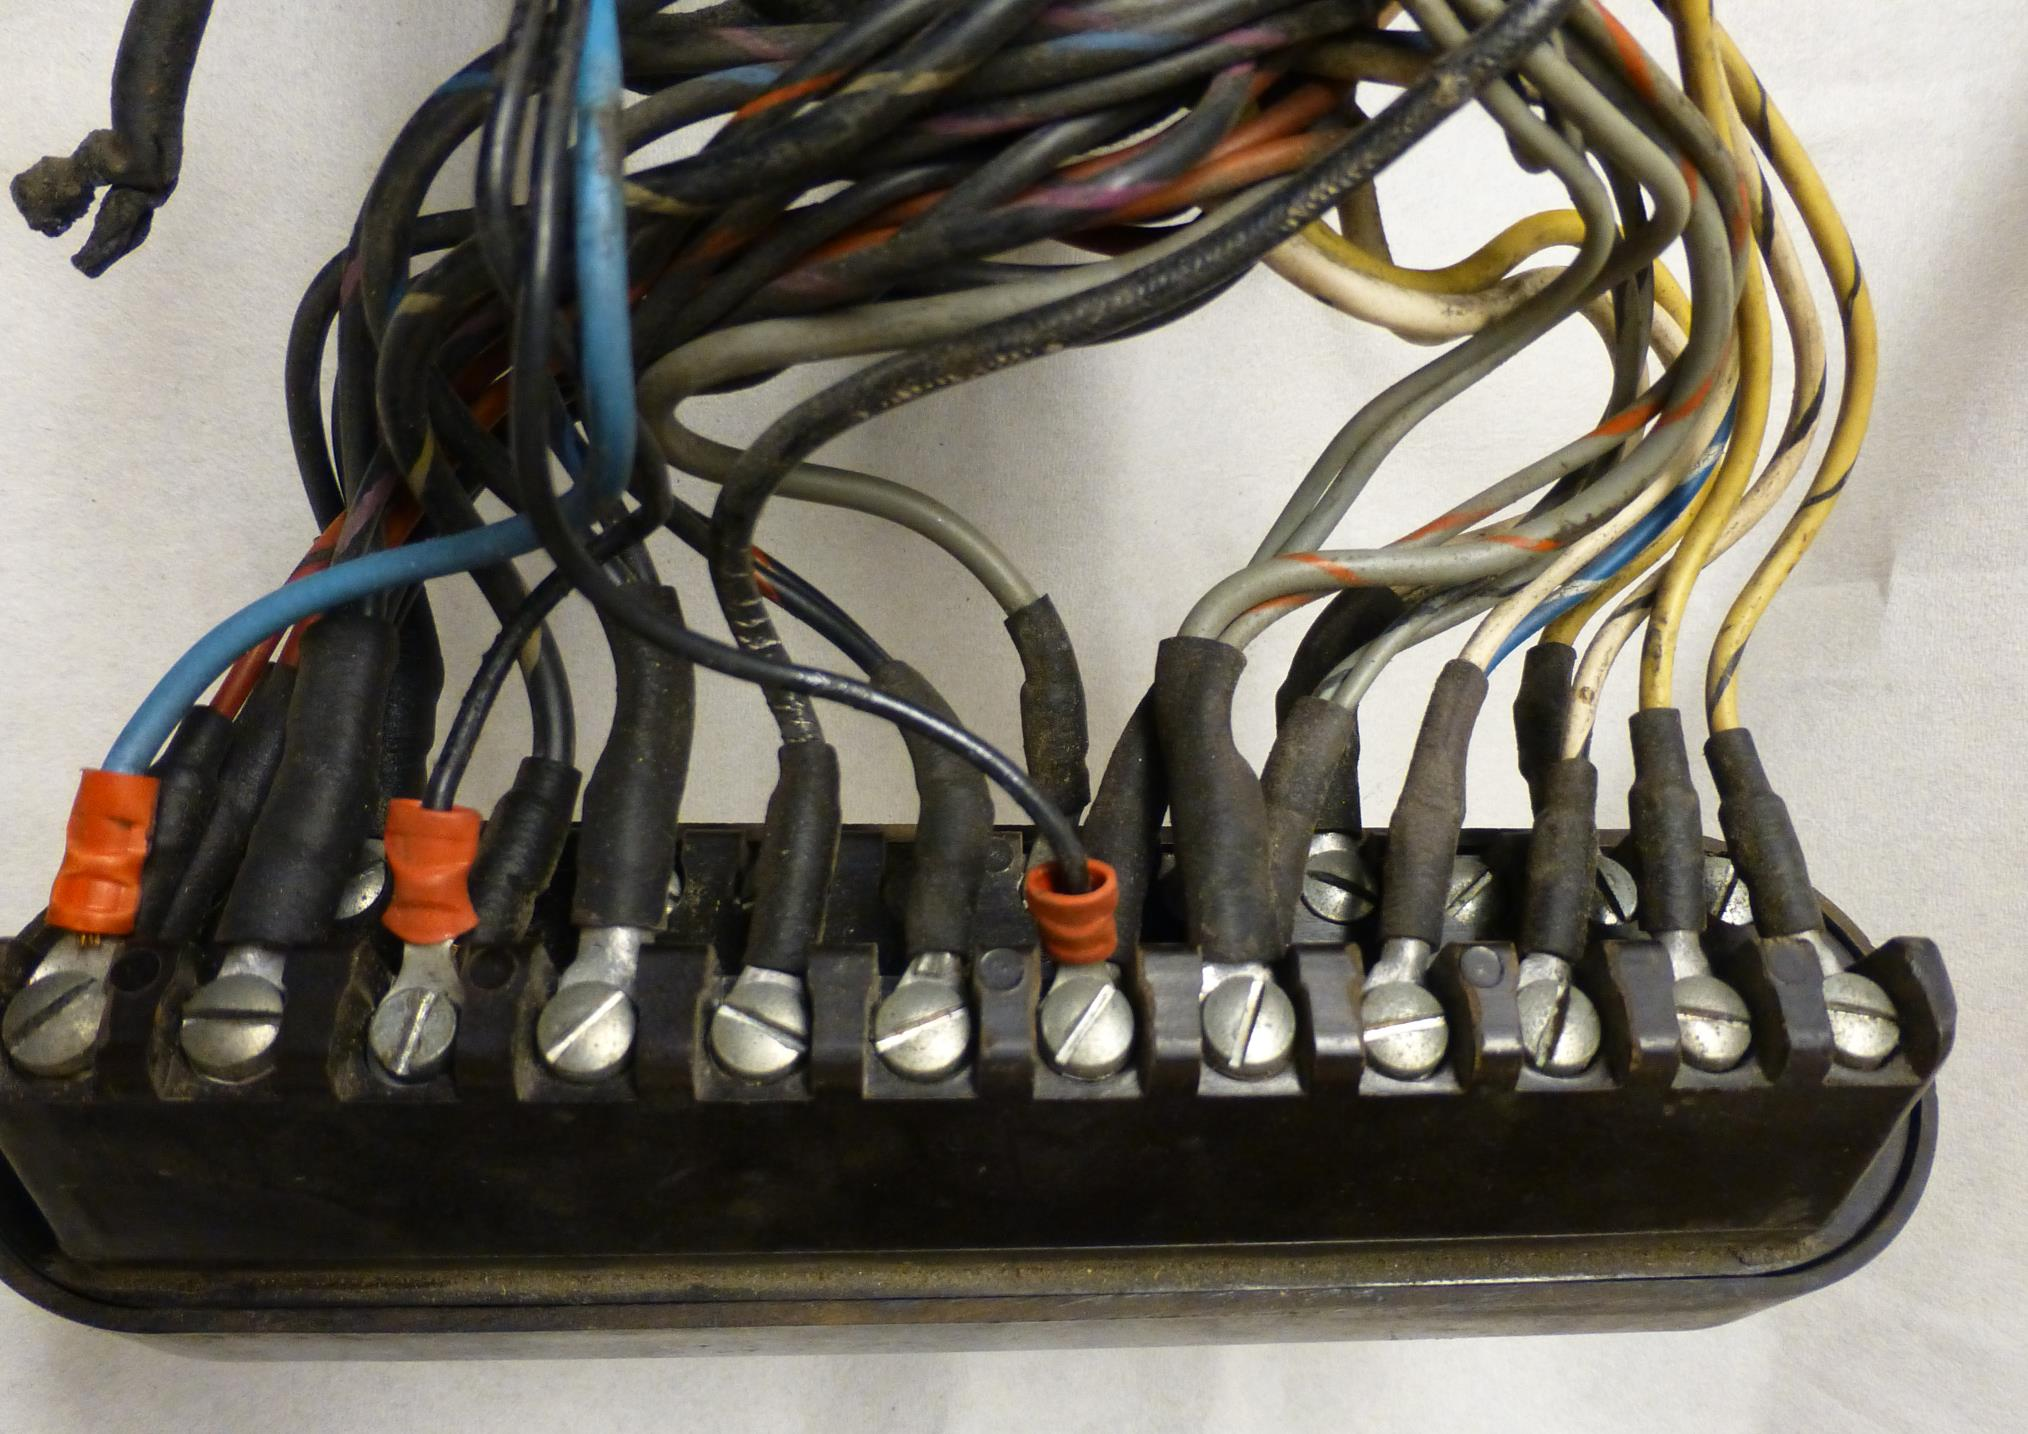 Mercedes Benz 219 Restoration Cables Old Fuse Box Help The Cable Harness Connection To